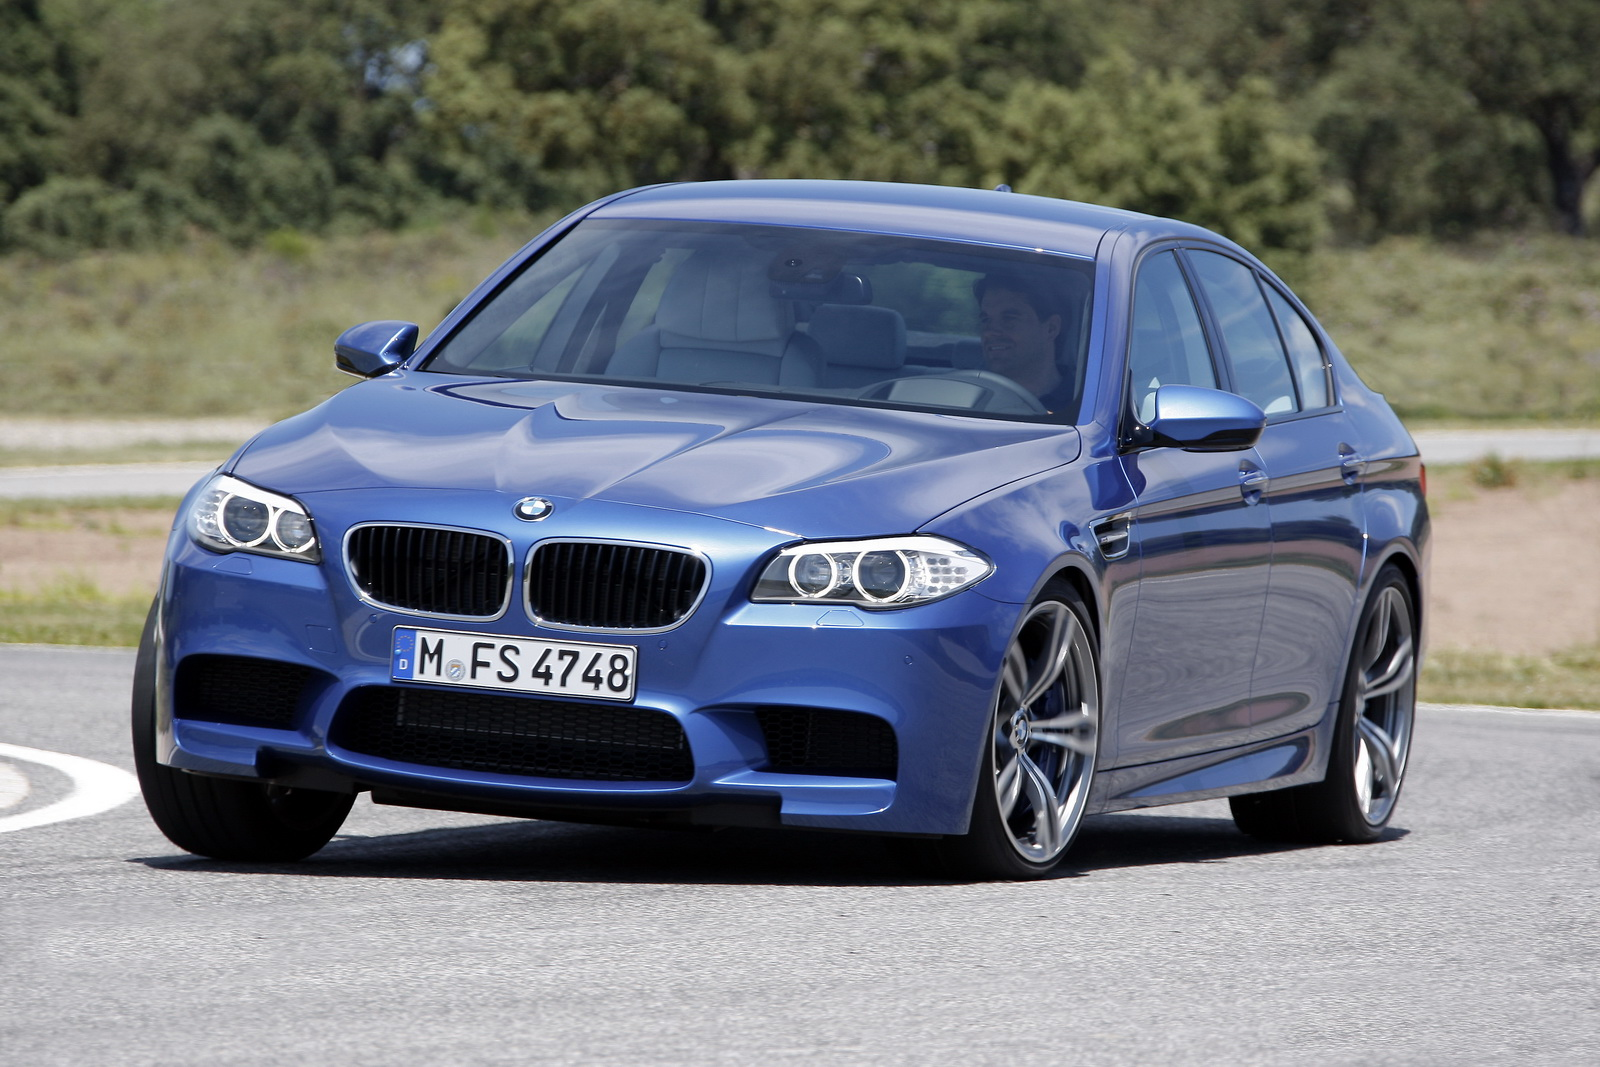 bmw f10 m5 production to end this month likely the last. Black Bedroom Furniture Sets. Home Design Ideas